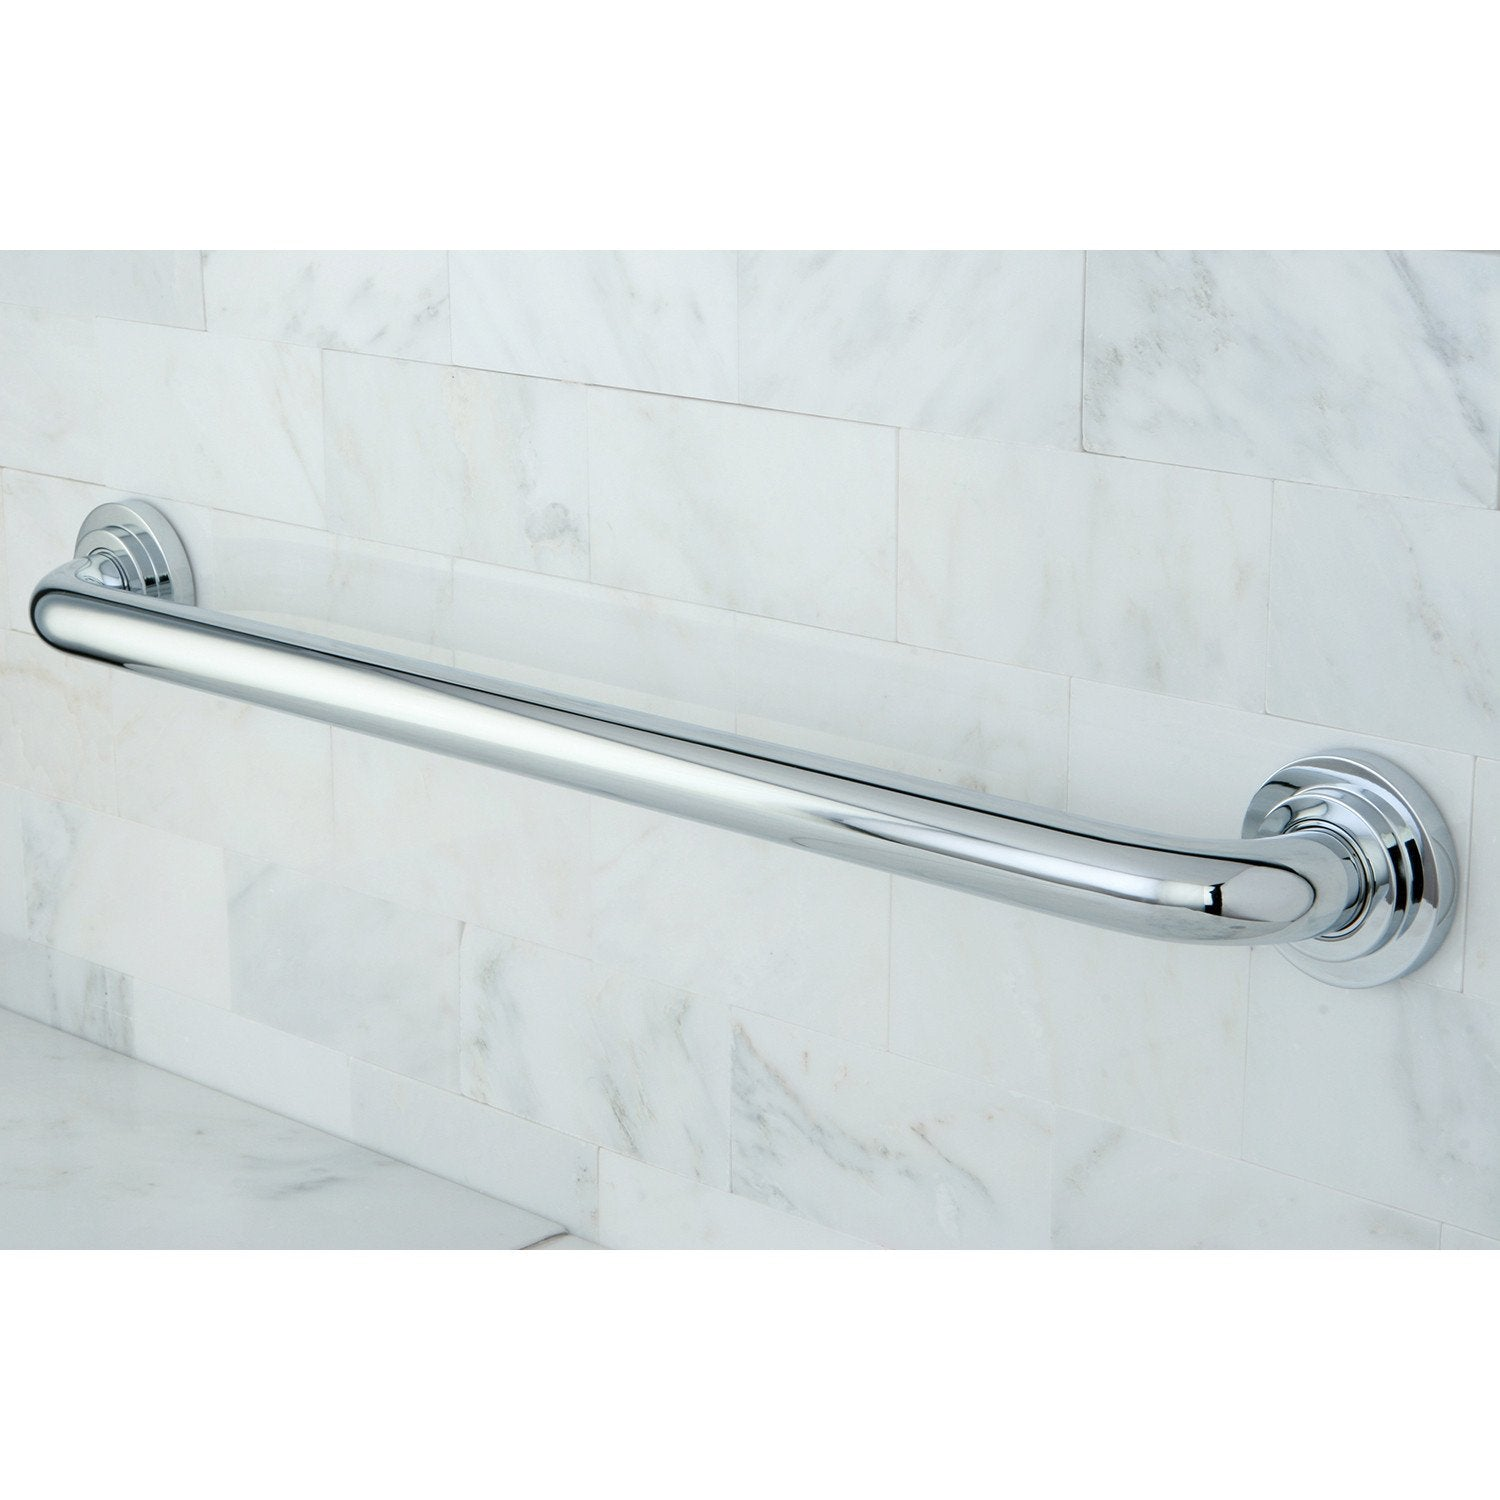 Kingston Brass Grab Bars - Chrome Manhattan 24\